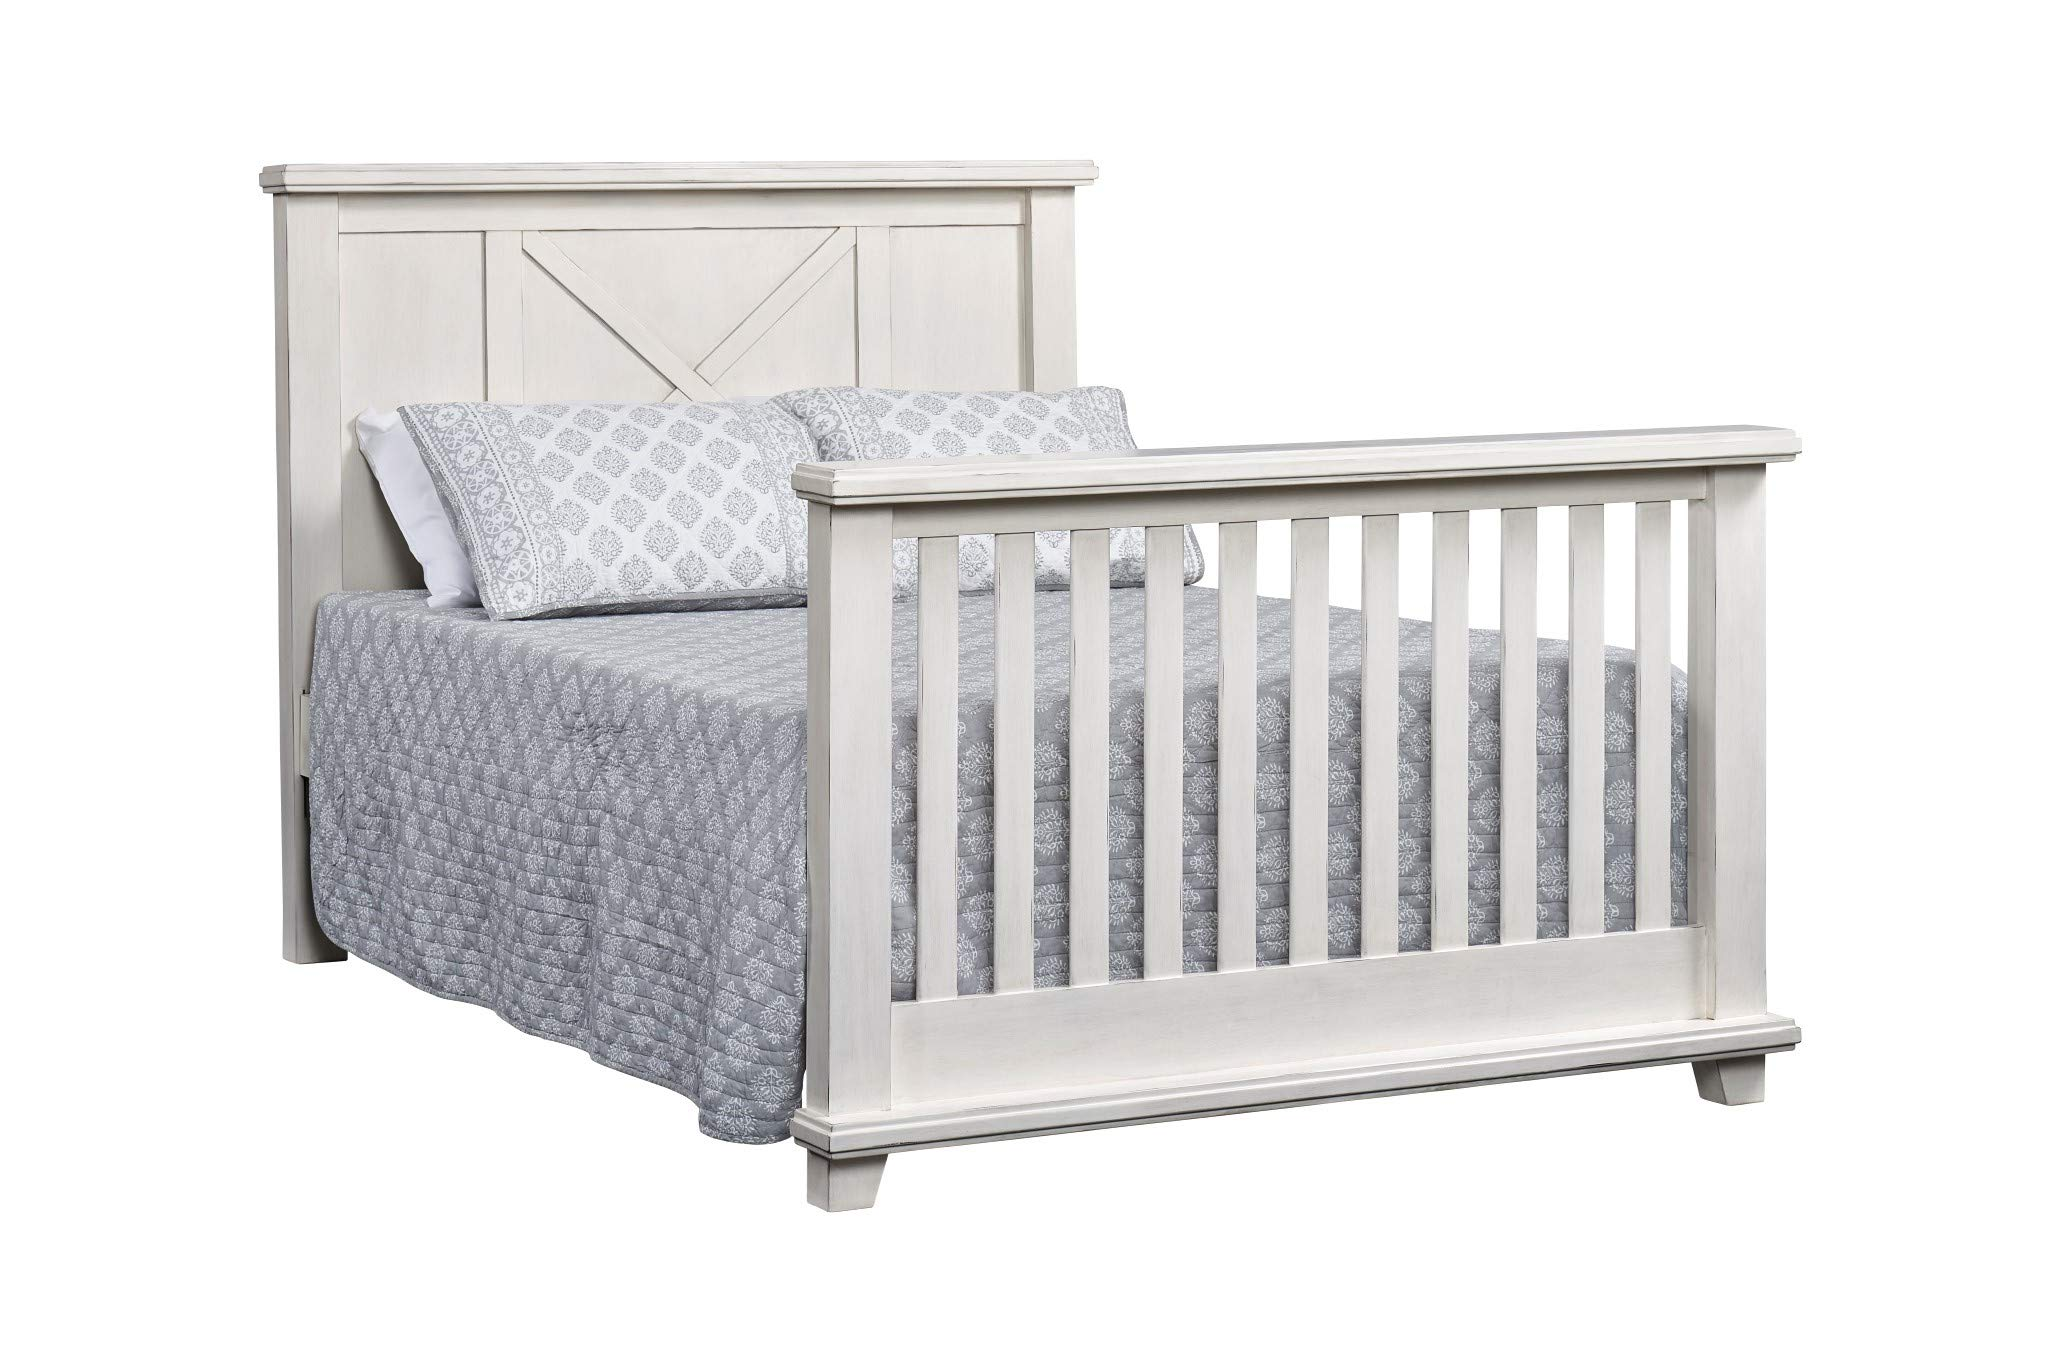 Oxford Baby Lexington Full Bed Conversion Kit, Heirloom White by Oxford Baby (Image #2)